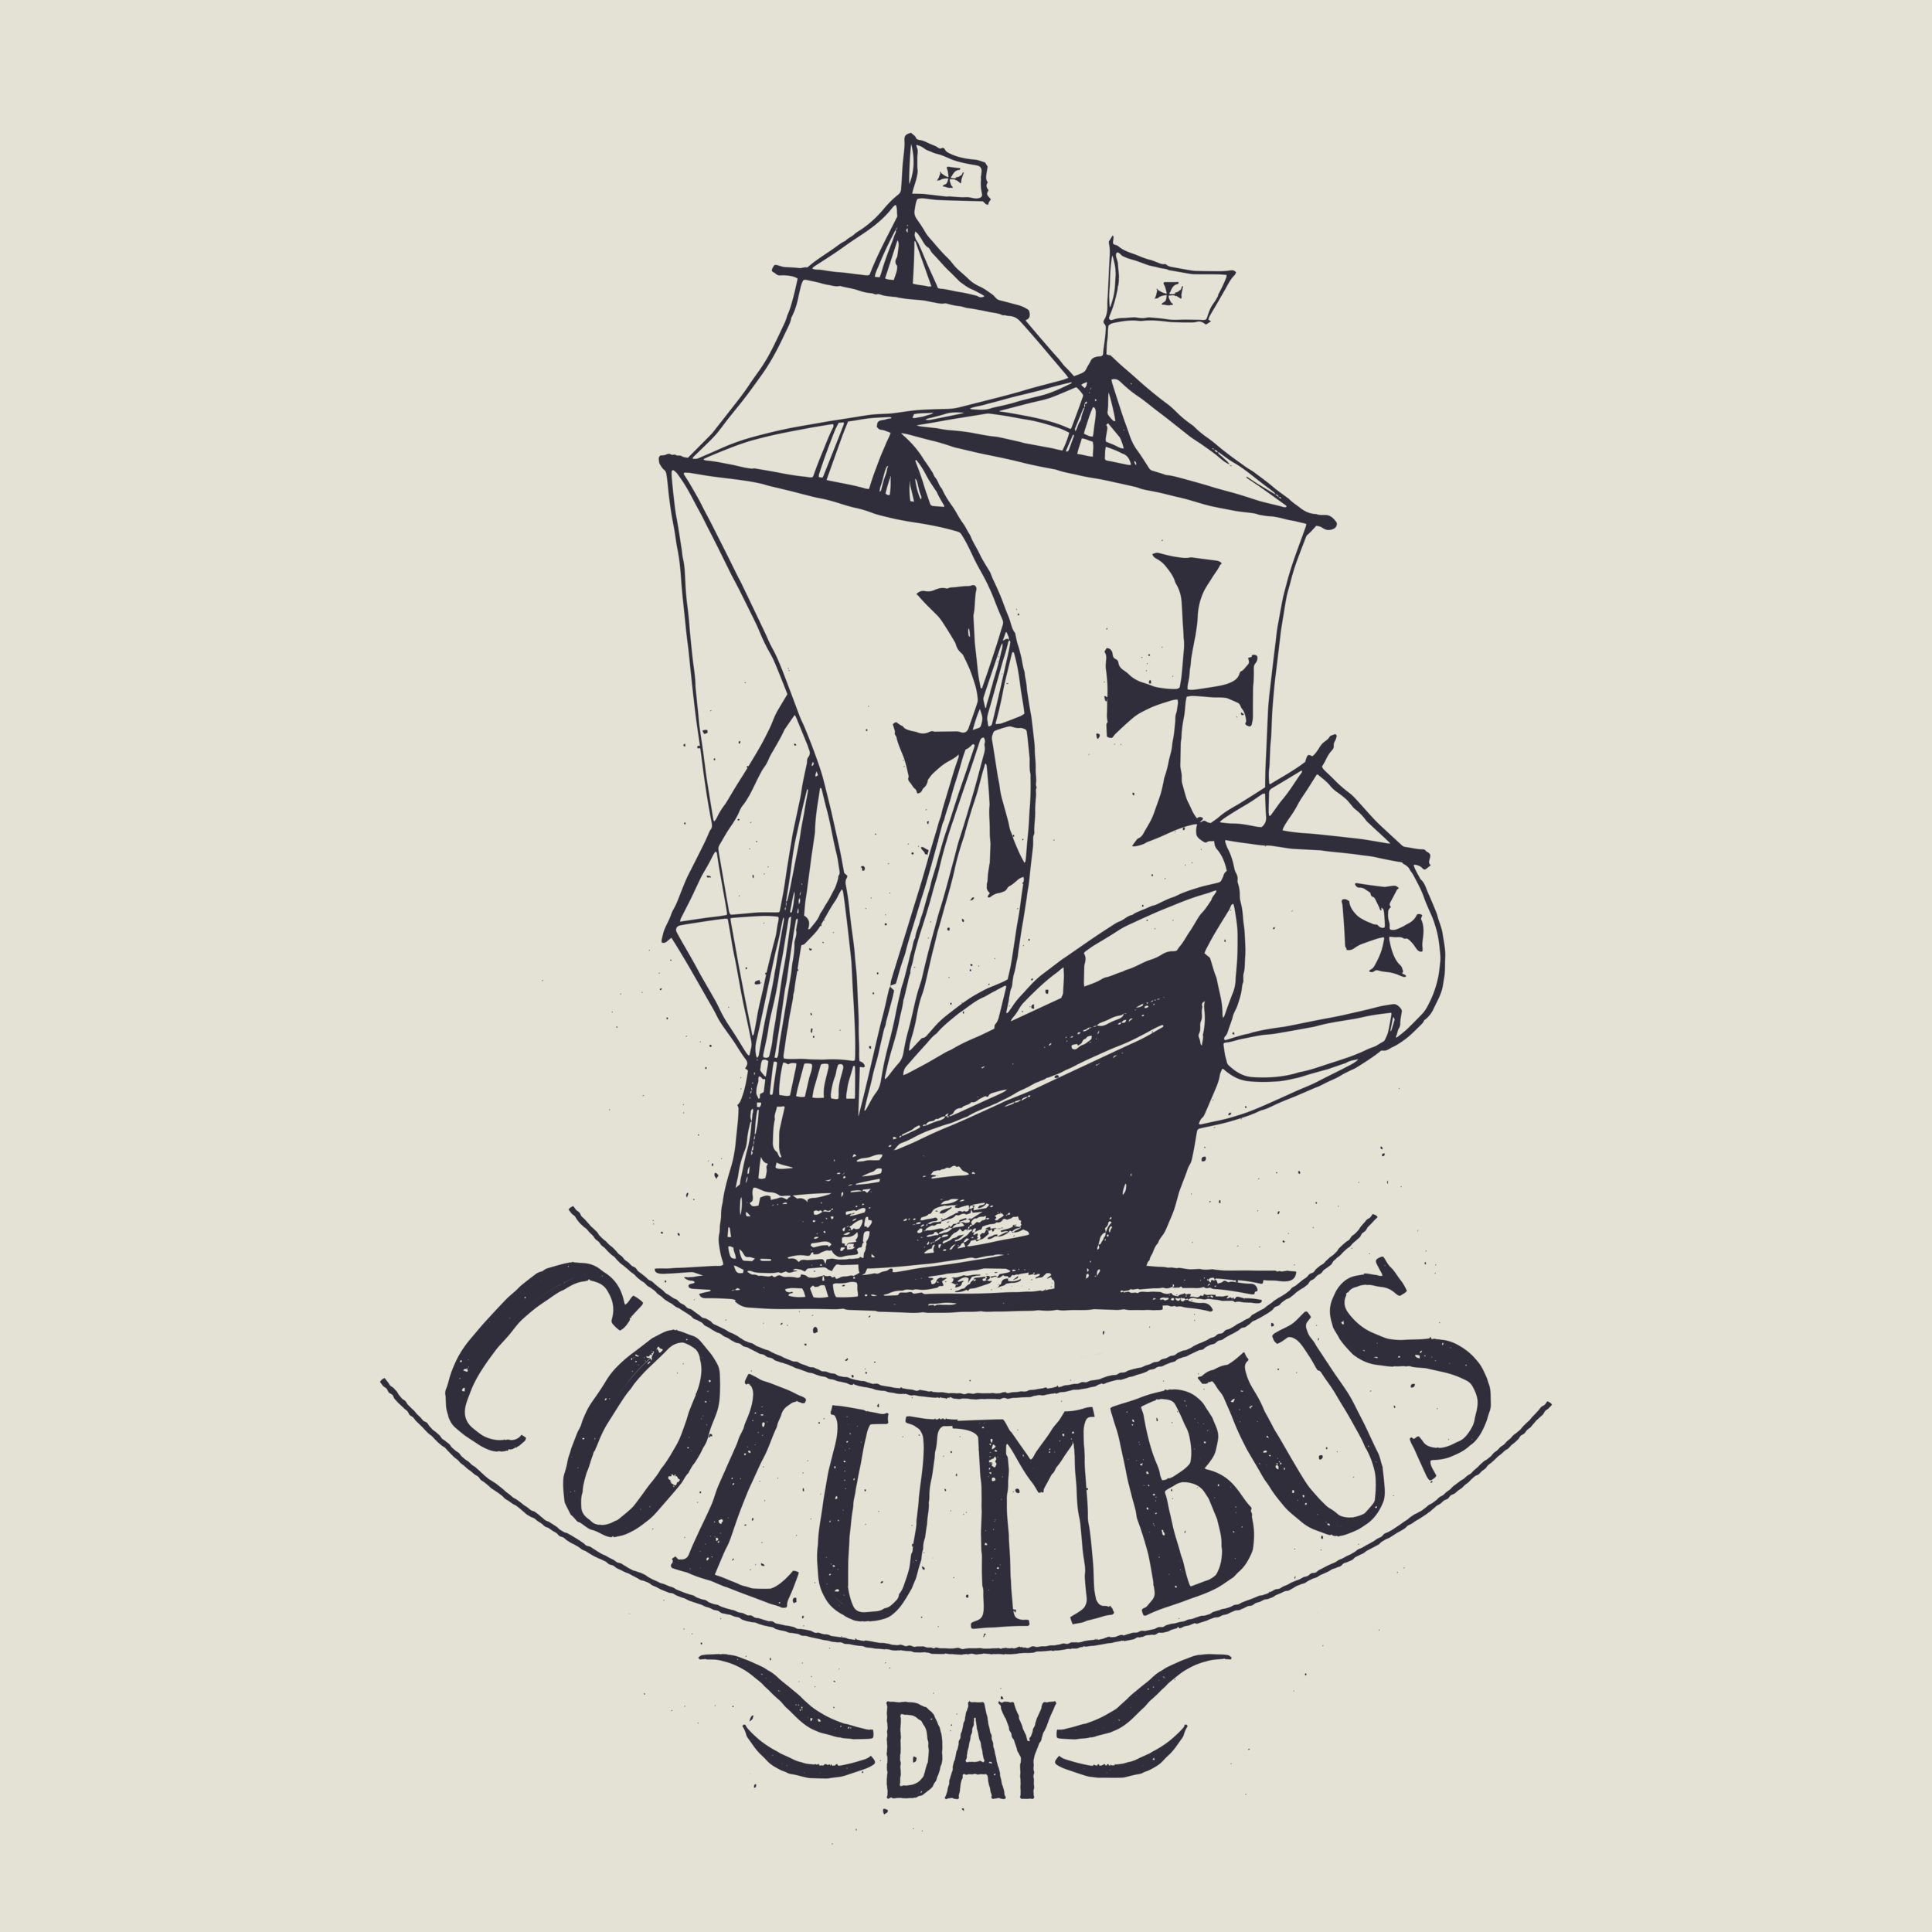 ColumbusDay - AdobeStock_93256318.png